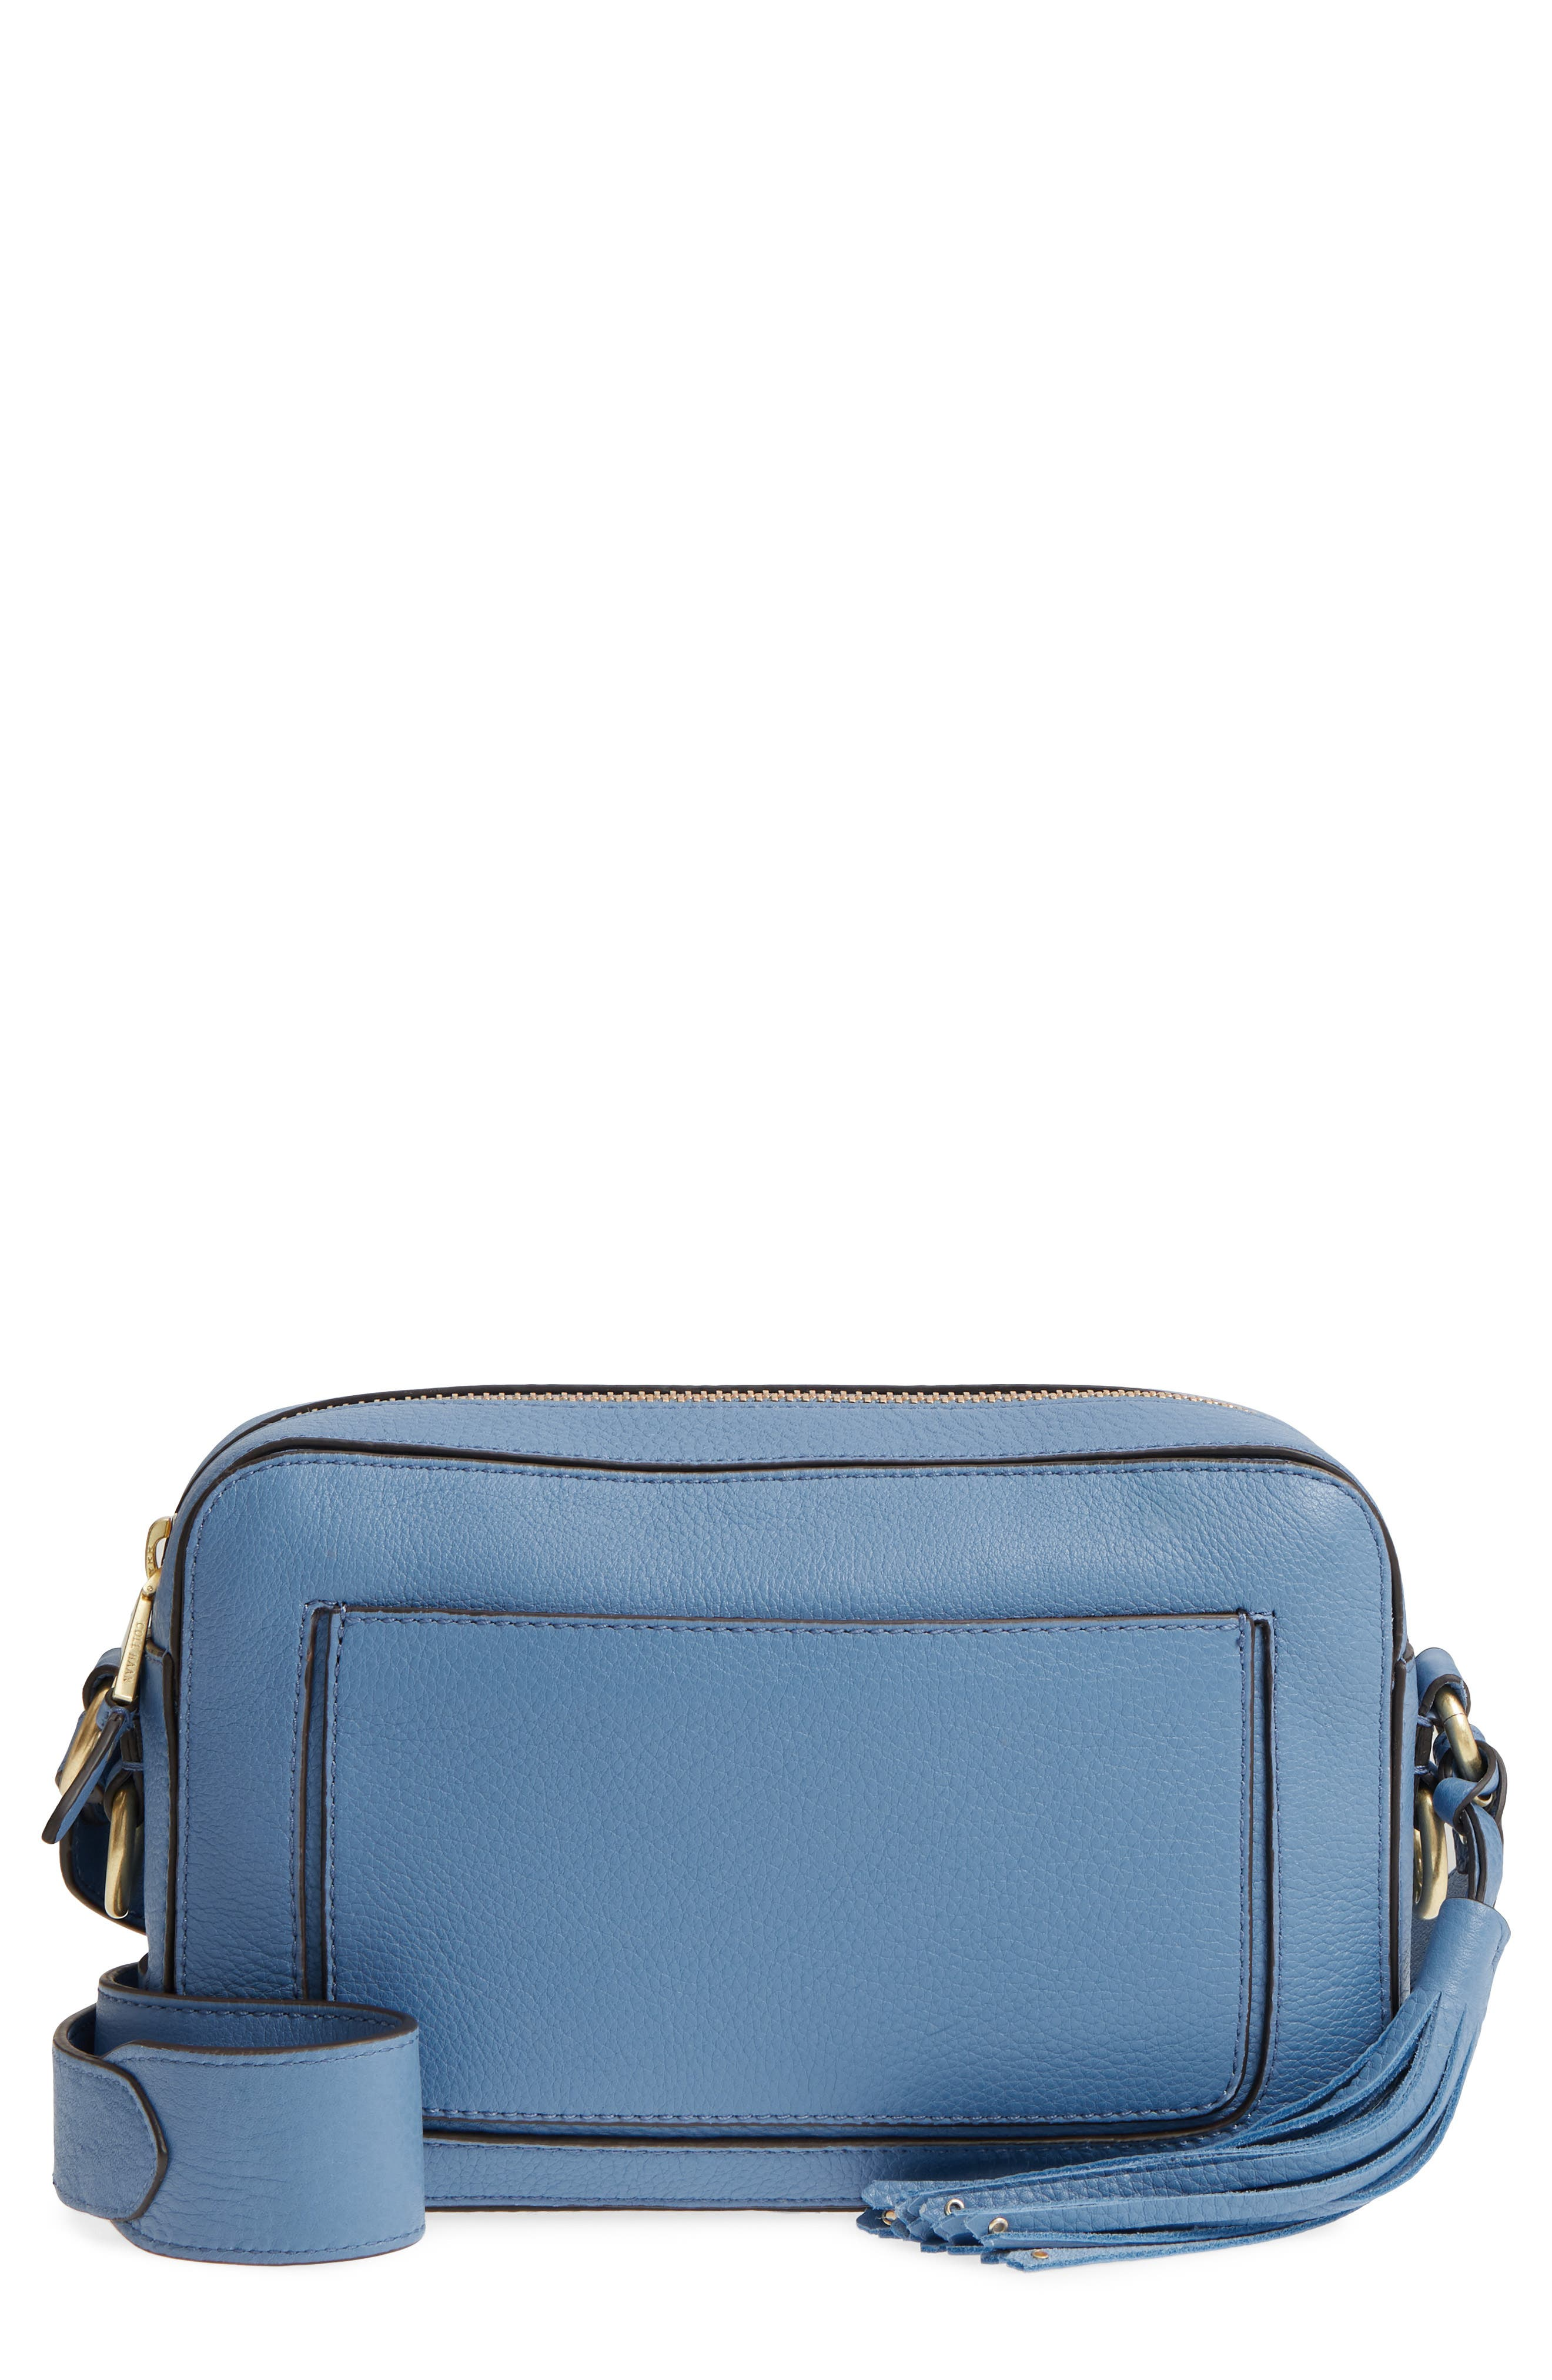 Cassidy RFID Pebbled Leather Camera Bag,                             Main thumbnail 4, color,